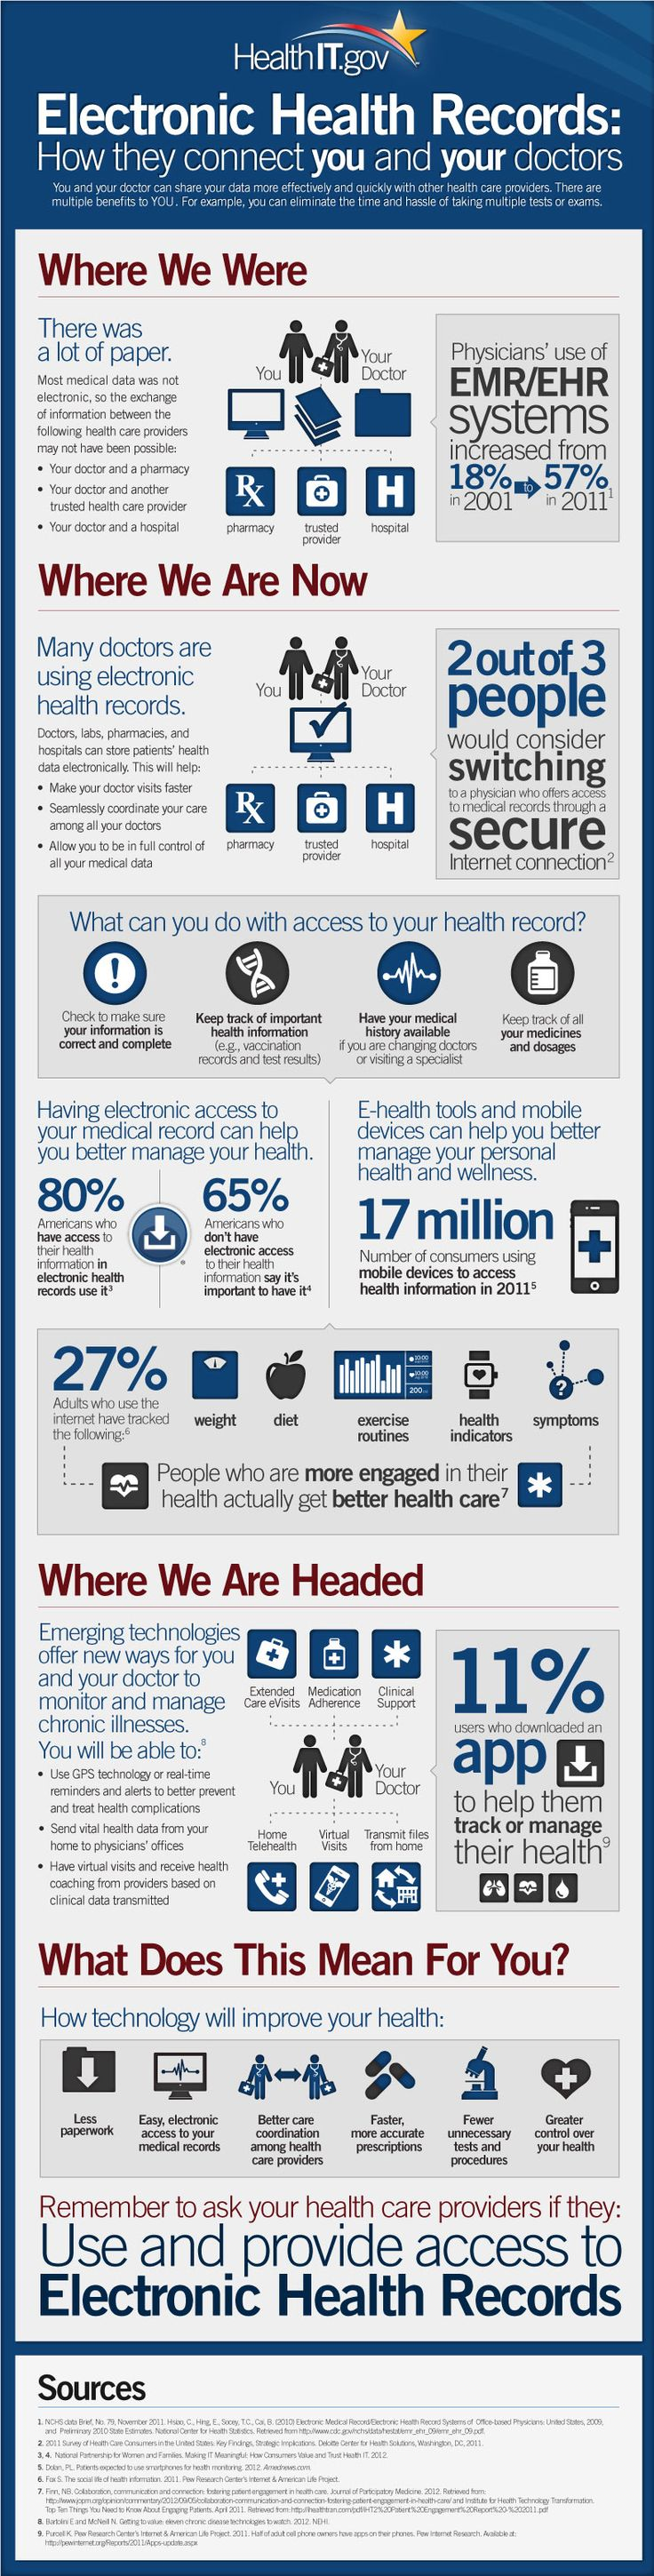 ELECTRONIC MEDICAL RECORDS: HOW THEY CONNECT YOU AND YOUR DOCTORS-Having access to your electronic medical records (EMR) is important! Sixty-five percent of Americans who don't have access to their electronic medical records say its important to have. E-health tools and mobile devices can help manage your personal health and coordinate care with your doctors. #Infographic #EMR,#eHealth